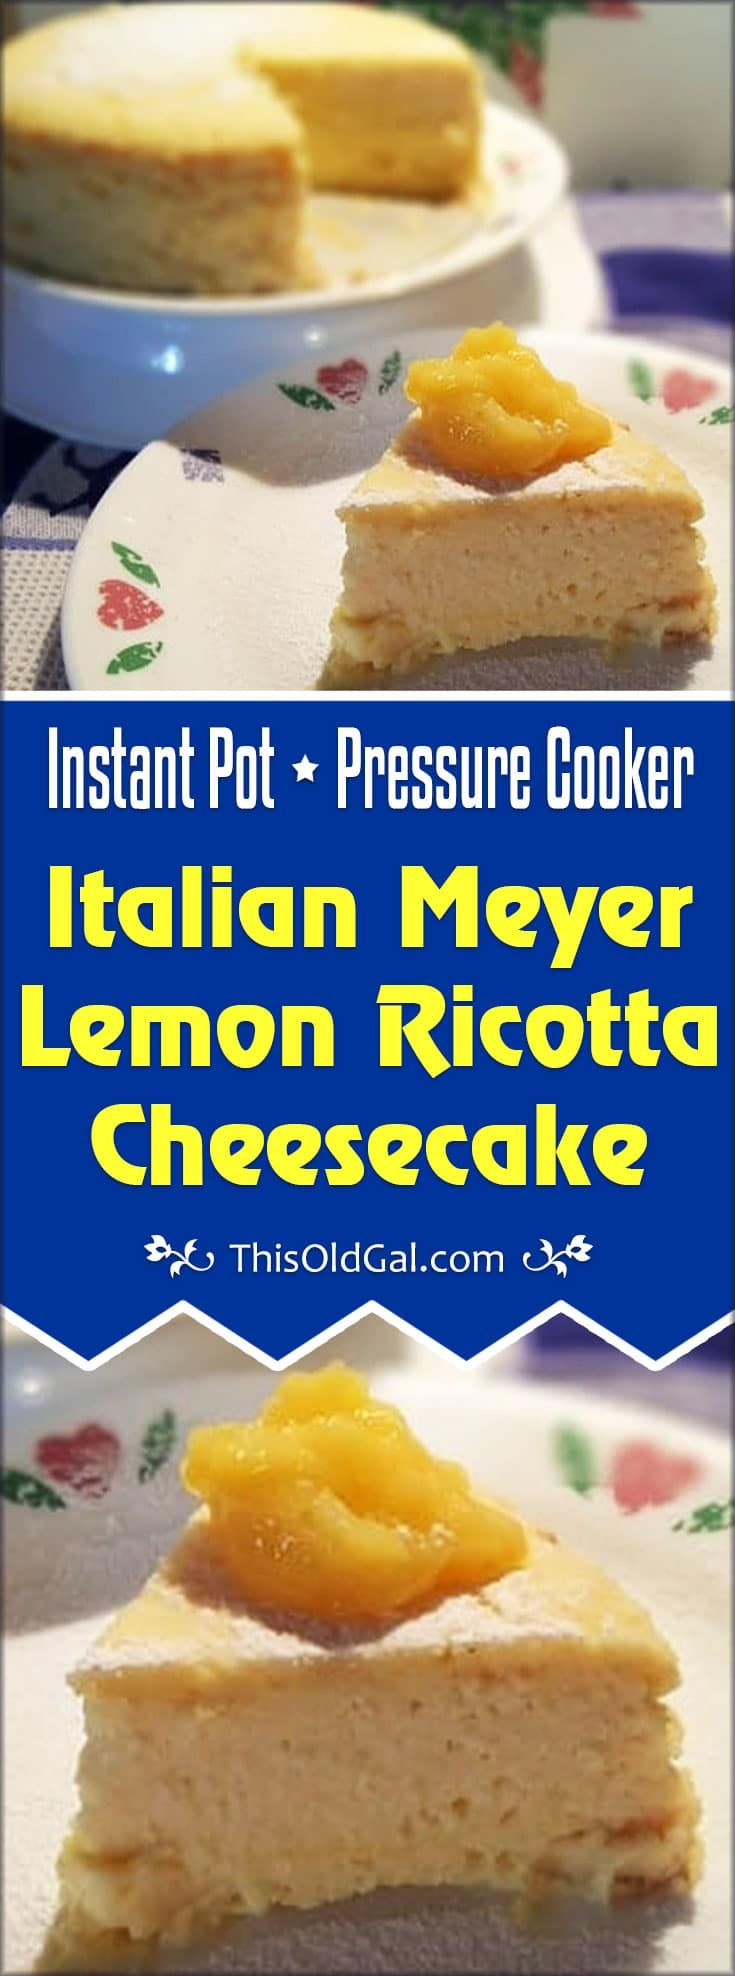 Instant Pot New York Style Cheesecake Recipes